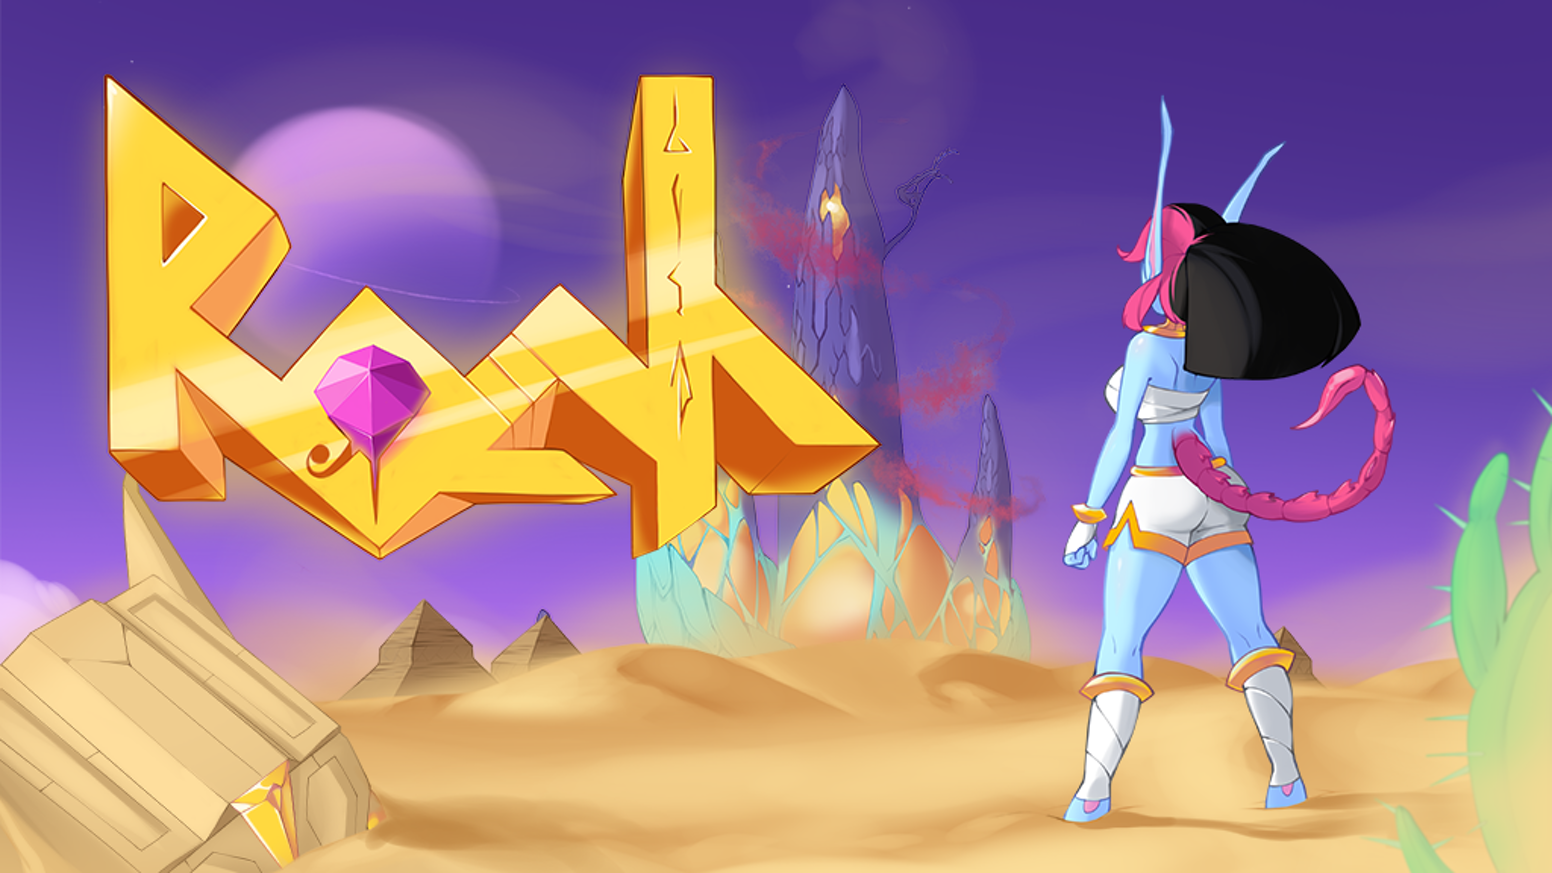 A challenging 2D platformer with fighting game elements. From the creator of Wings of Vi and I Wanna Be The Boshy.